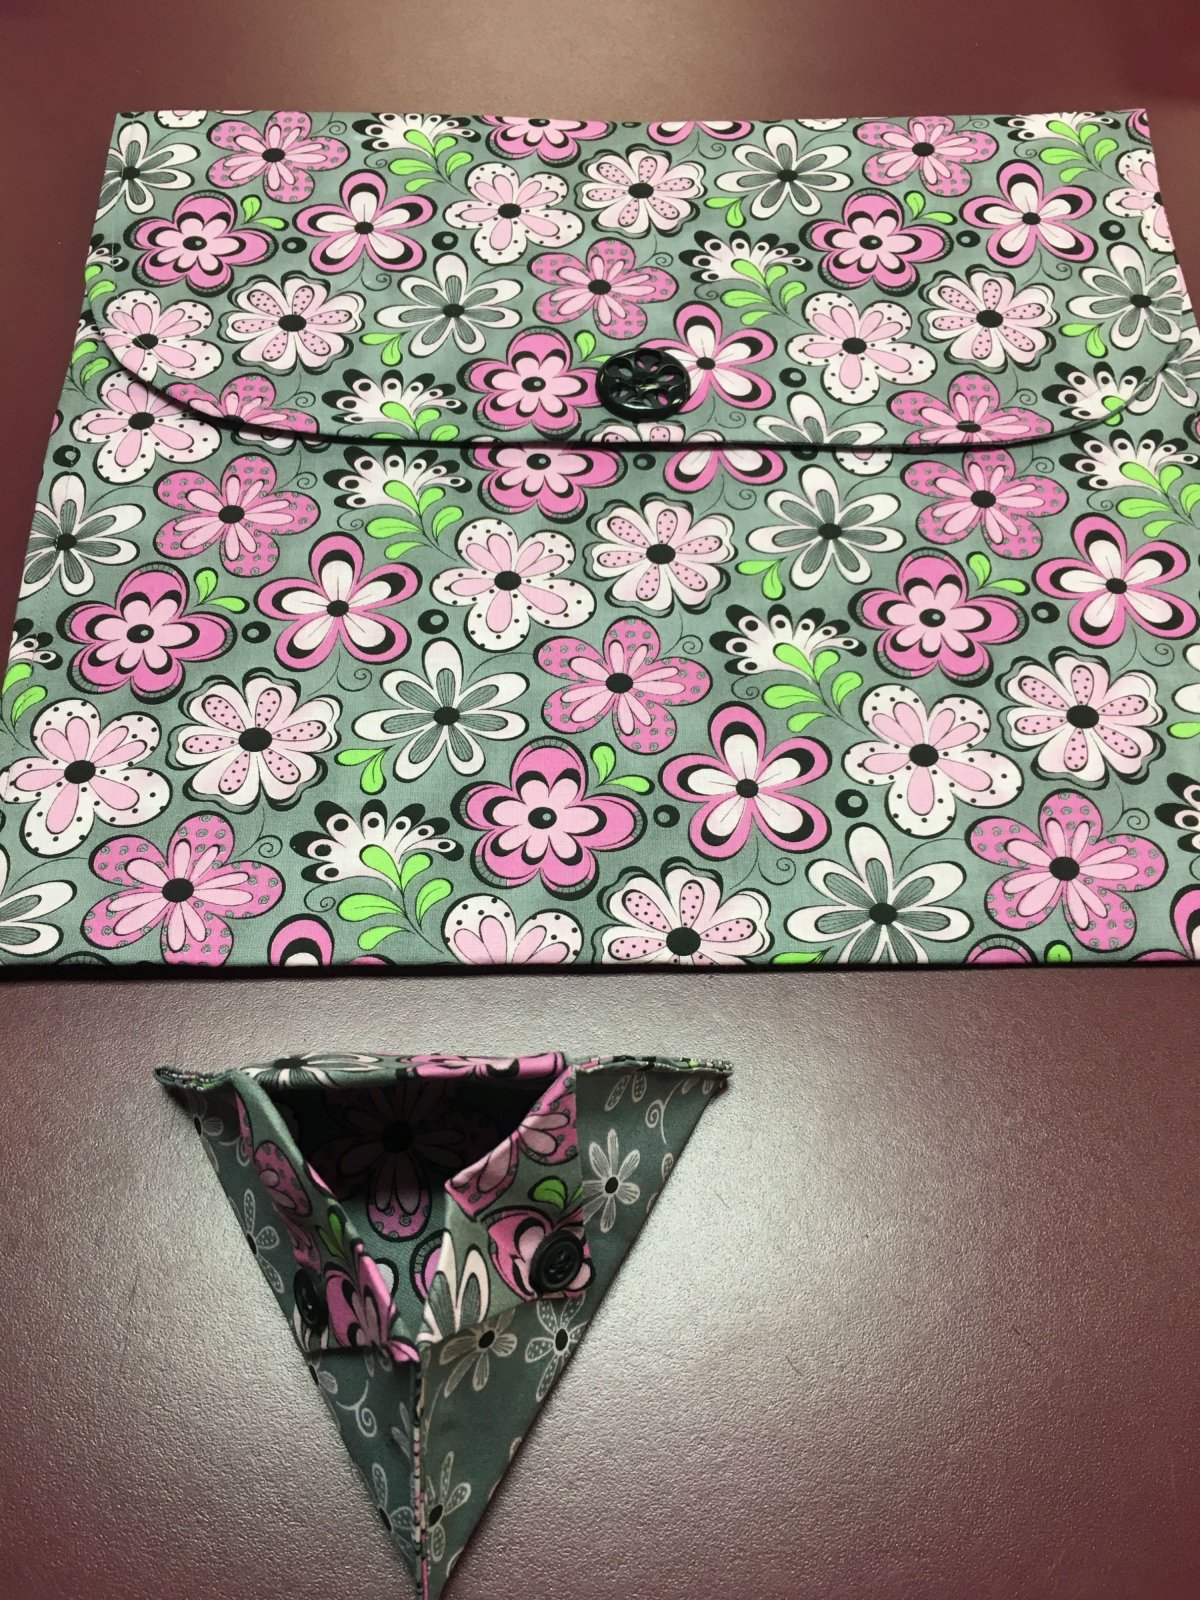 Project bag and ort bag - pink floral